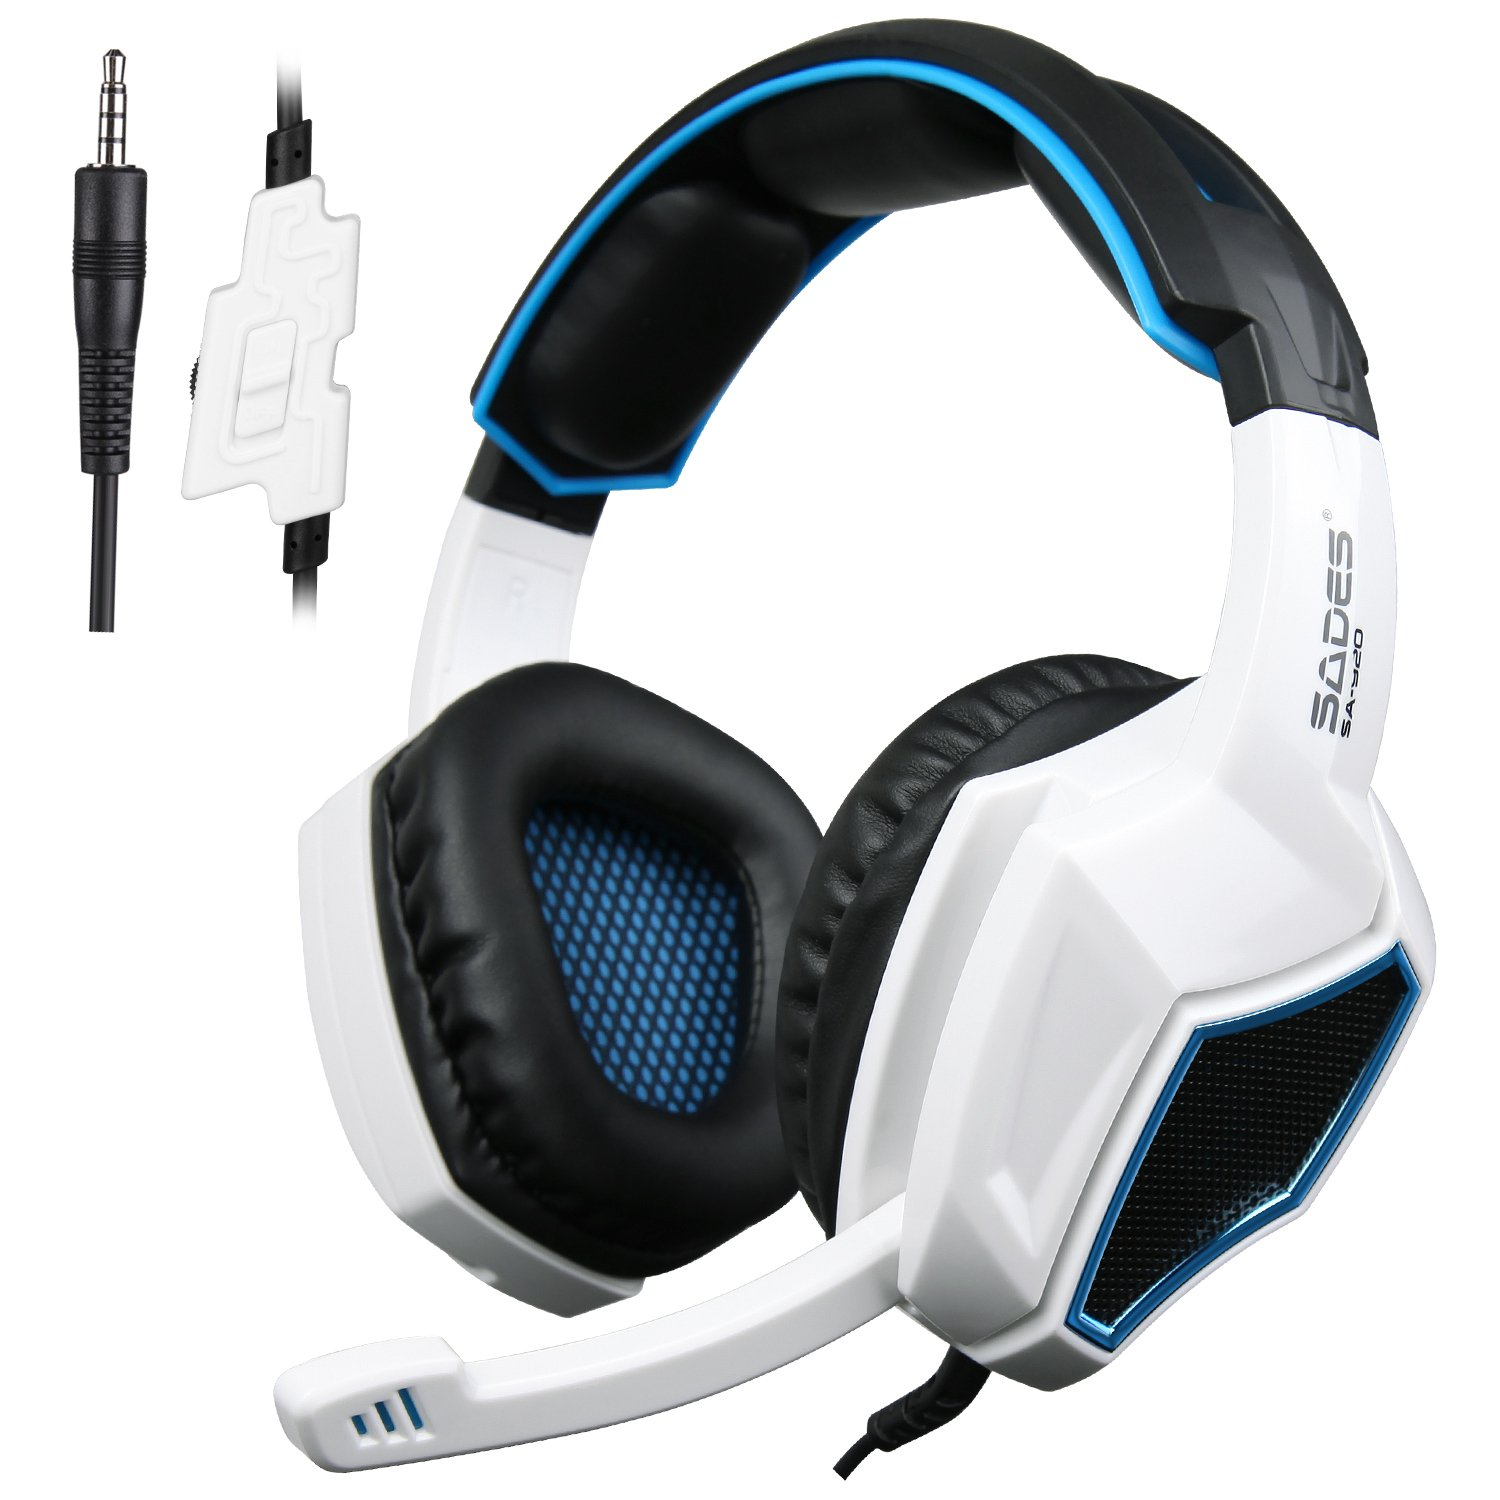 Xbox One PS4 Headset,Sades SA920 3.5mm Wired Over Ear Stereo Gaming Headphones with Microphone for PC IOS Computer Gamers Smart Phones Mobiles(White Black) by SADES